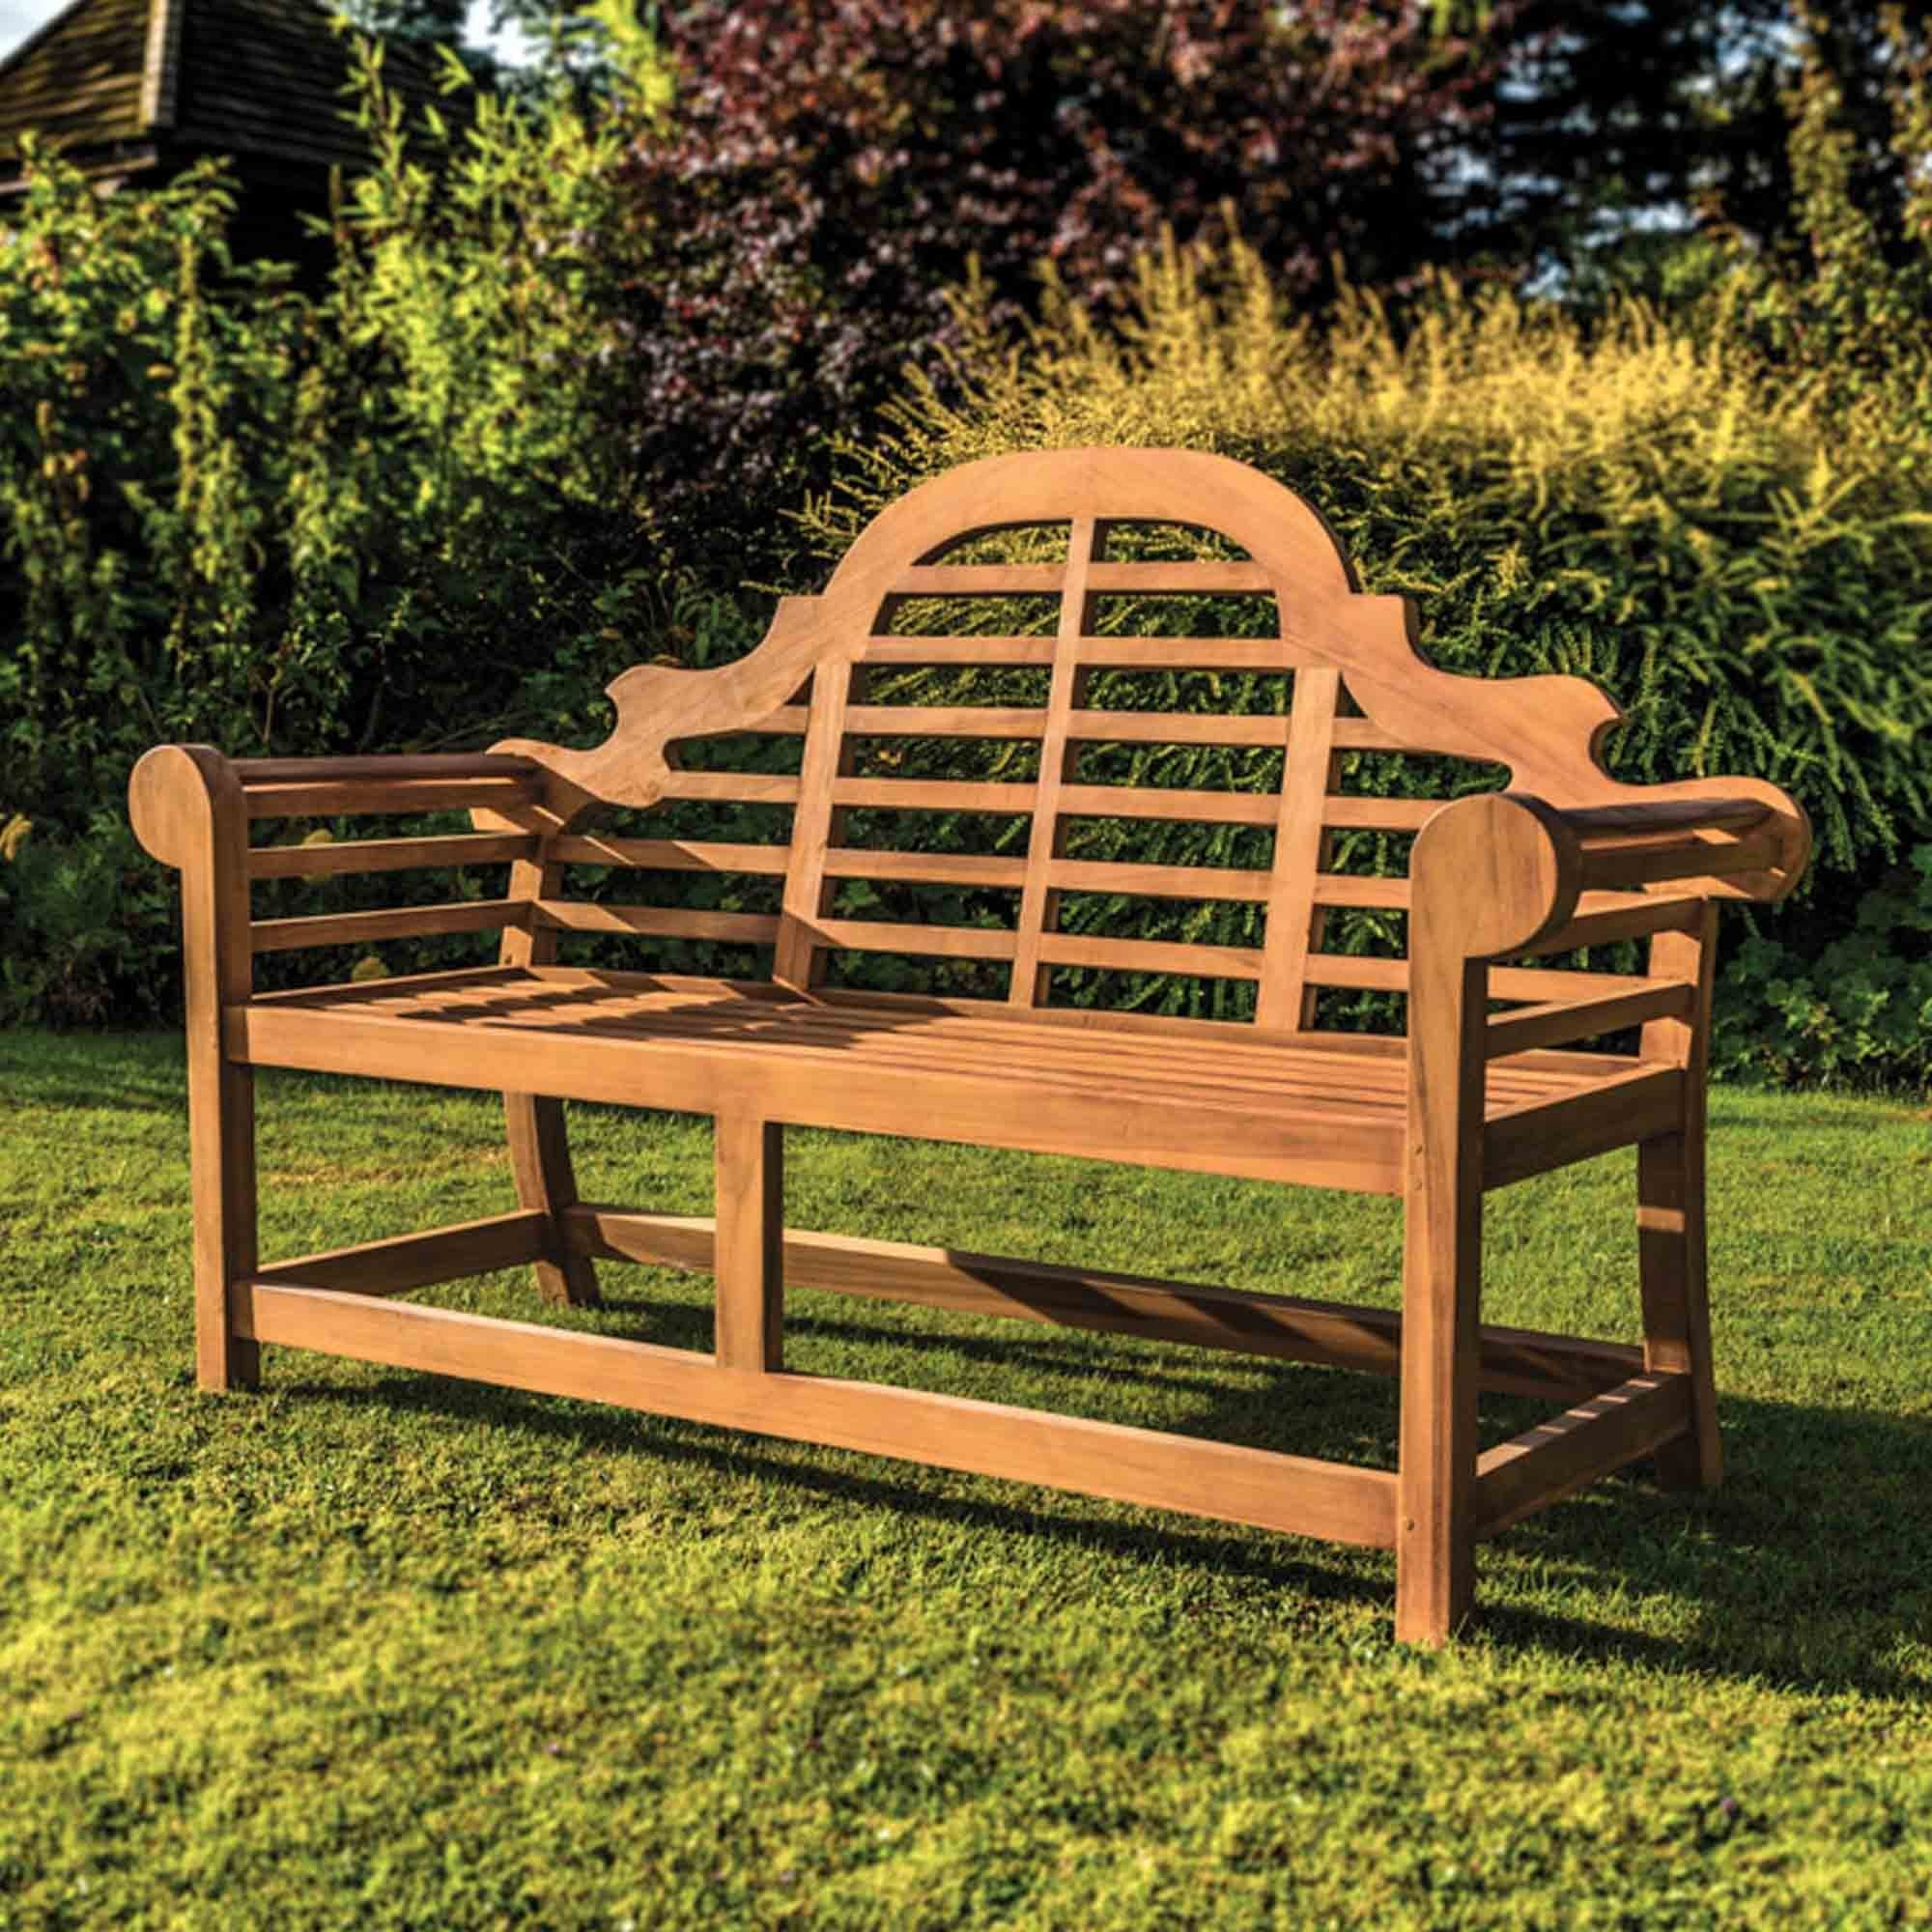 Curved Teak Bench Furniture From Delta House And Home Uk